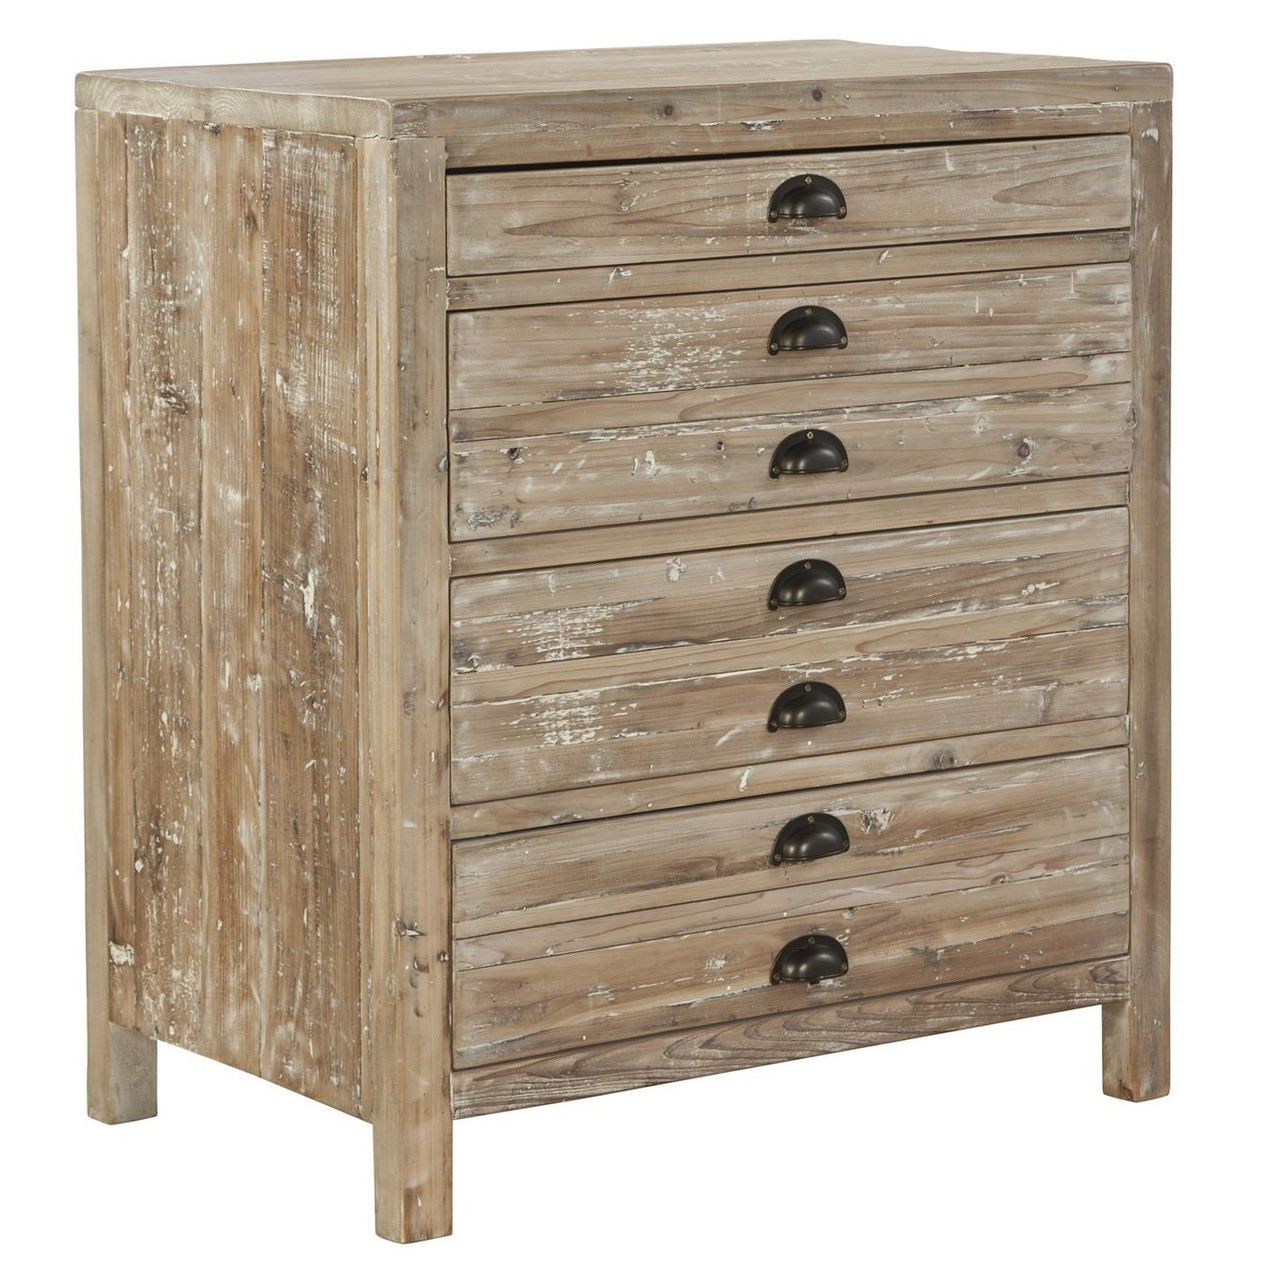 Apothecary Reclaimed Wood 4 Drawer Small Chest - Apothecary Reclaimed Wood 4 Drawer Small Chest Zin Home